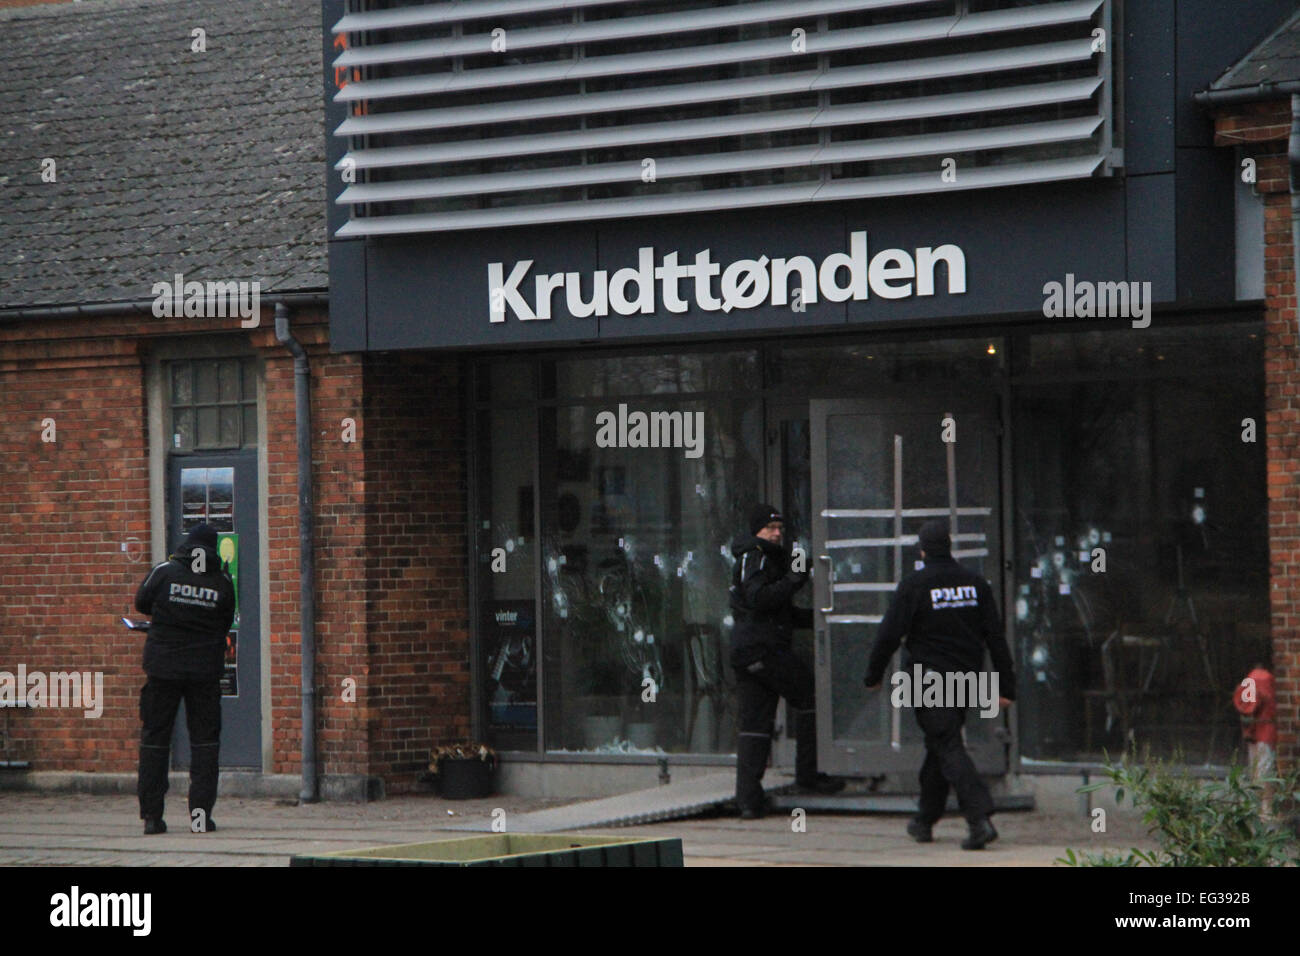 Denmark, Copenhagen. 15th Feb, 2015. Danish policemen stand guard at the cultural center Krudttoenden, where a man - Stock Image